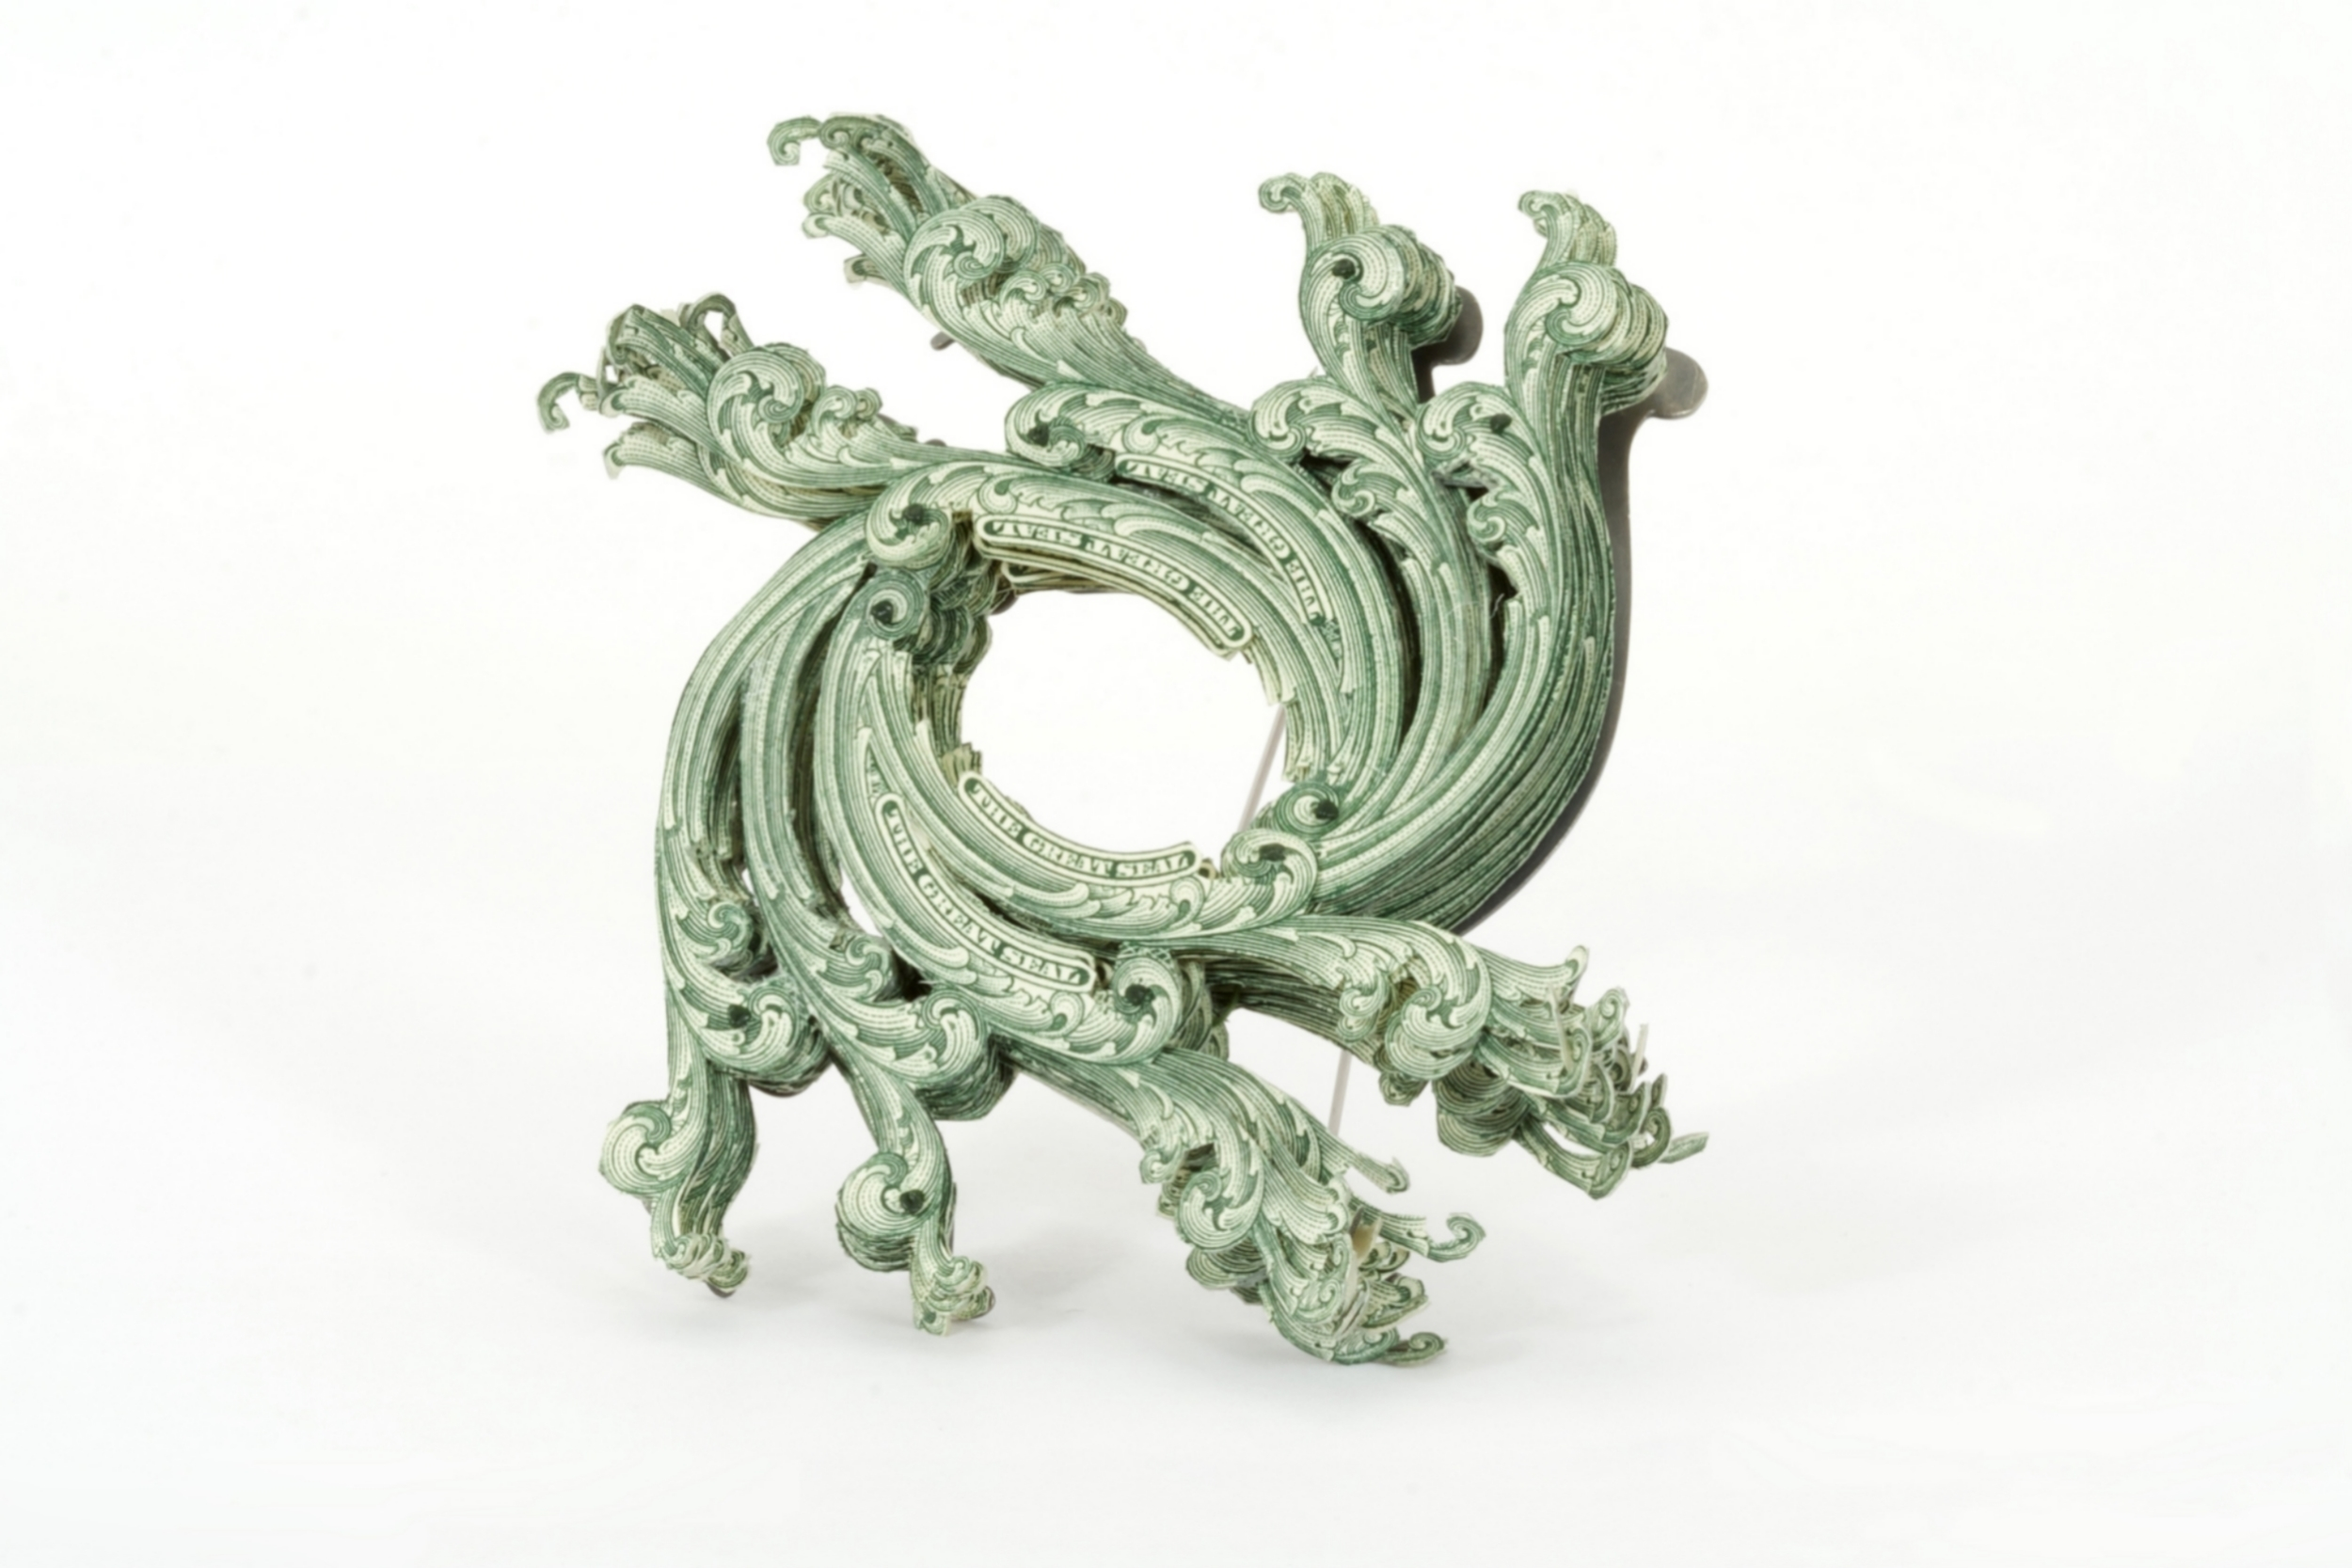 $36.00 Currency Converted  | Brooch | US Currency, Silver, Latex, Monofilament, and Surgical Steel | 2012 | Private Collection | 1/1